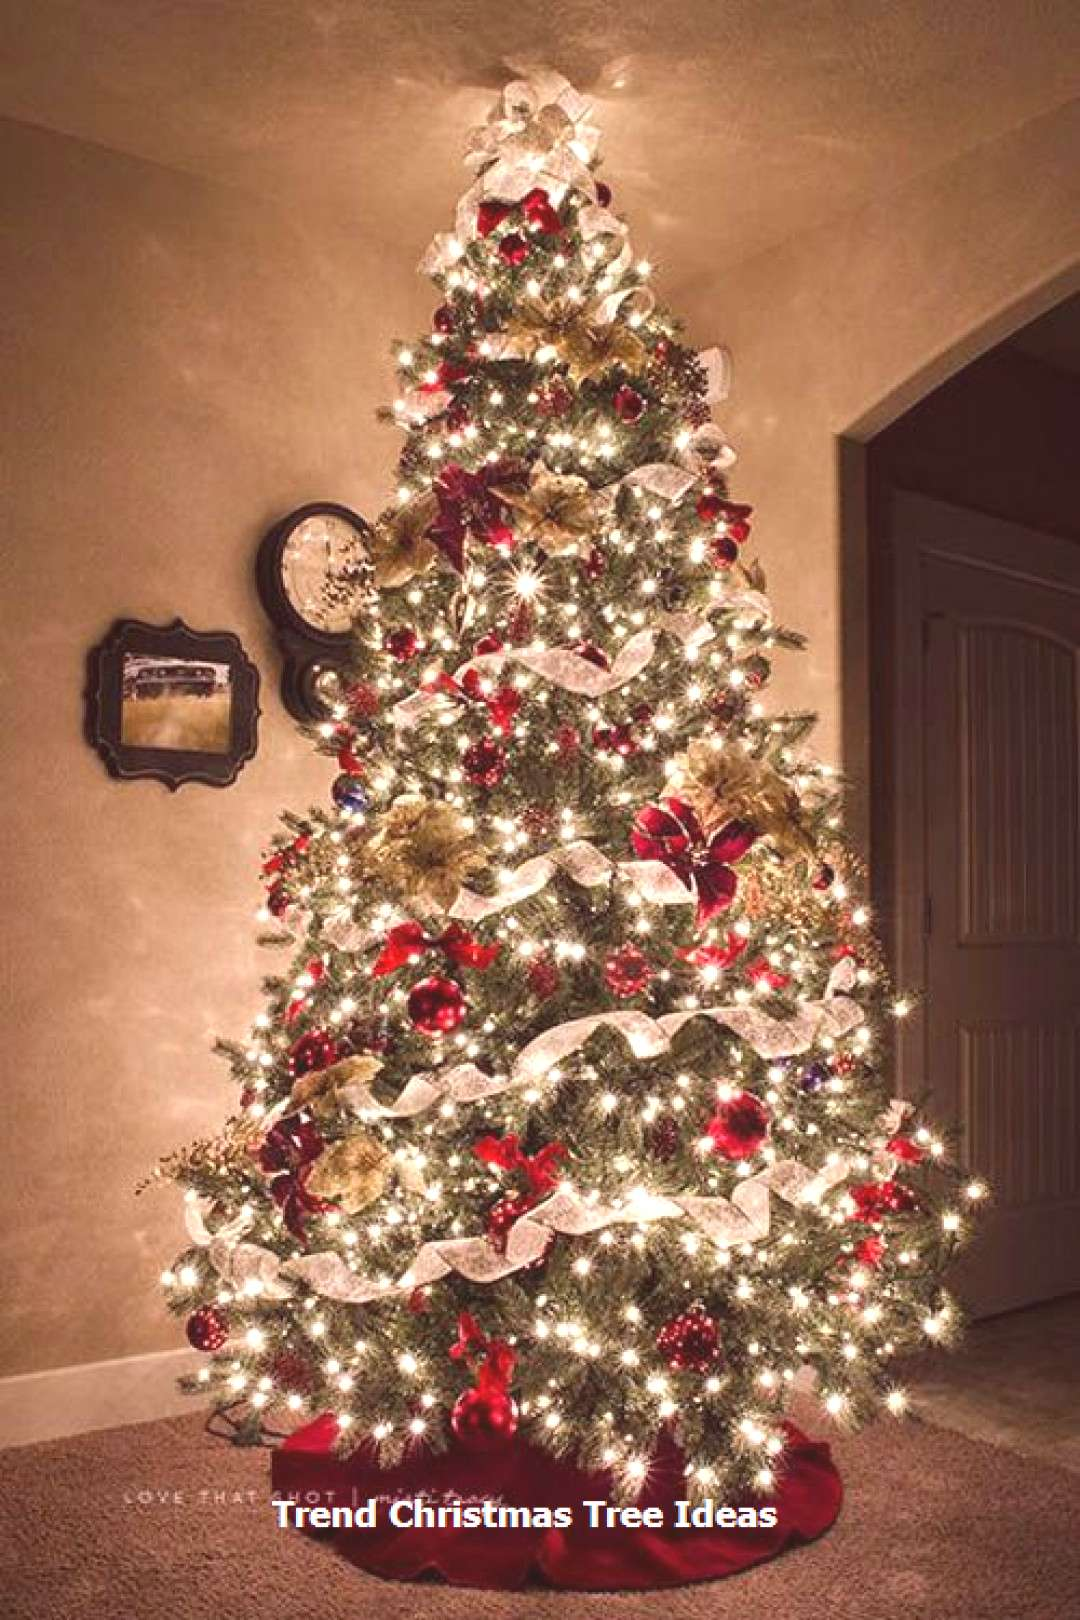 23 Christmas Tree Ideas That'll Really Make a Statement This Holiday The Christmas trees always rem